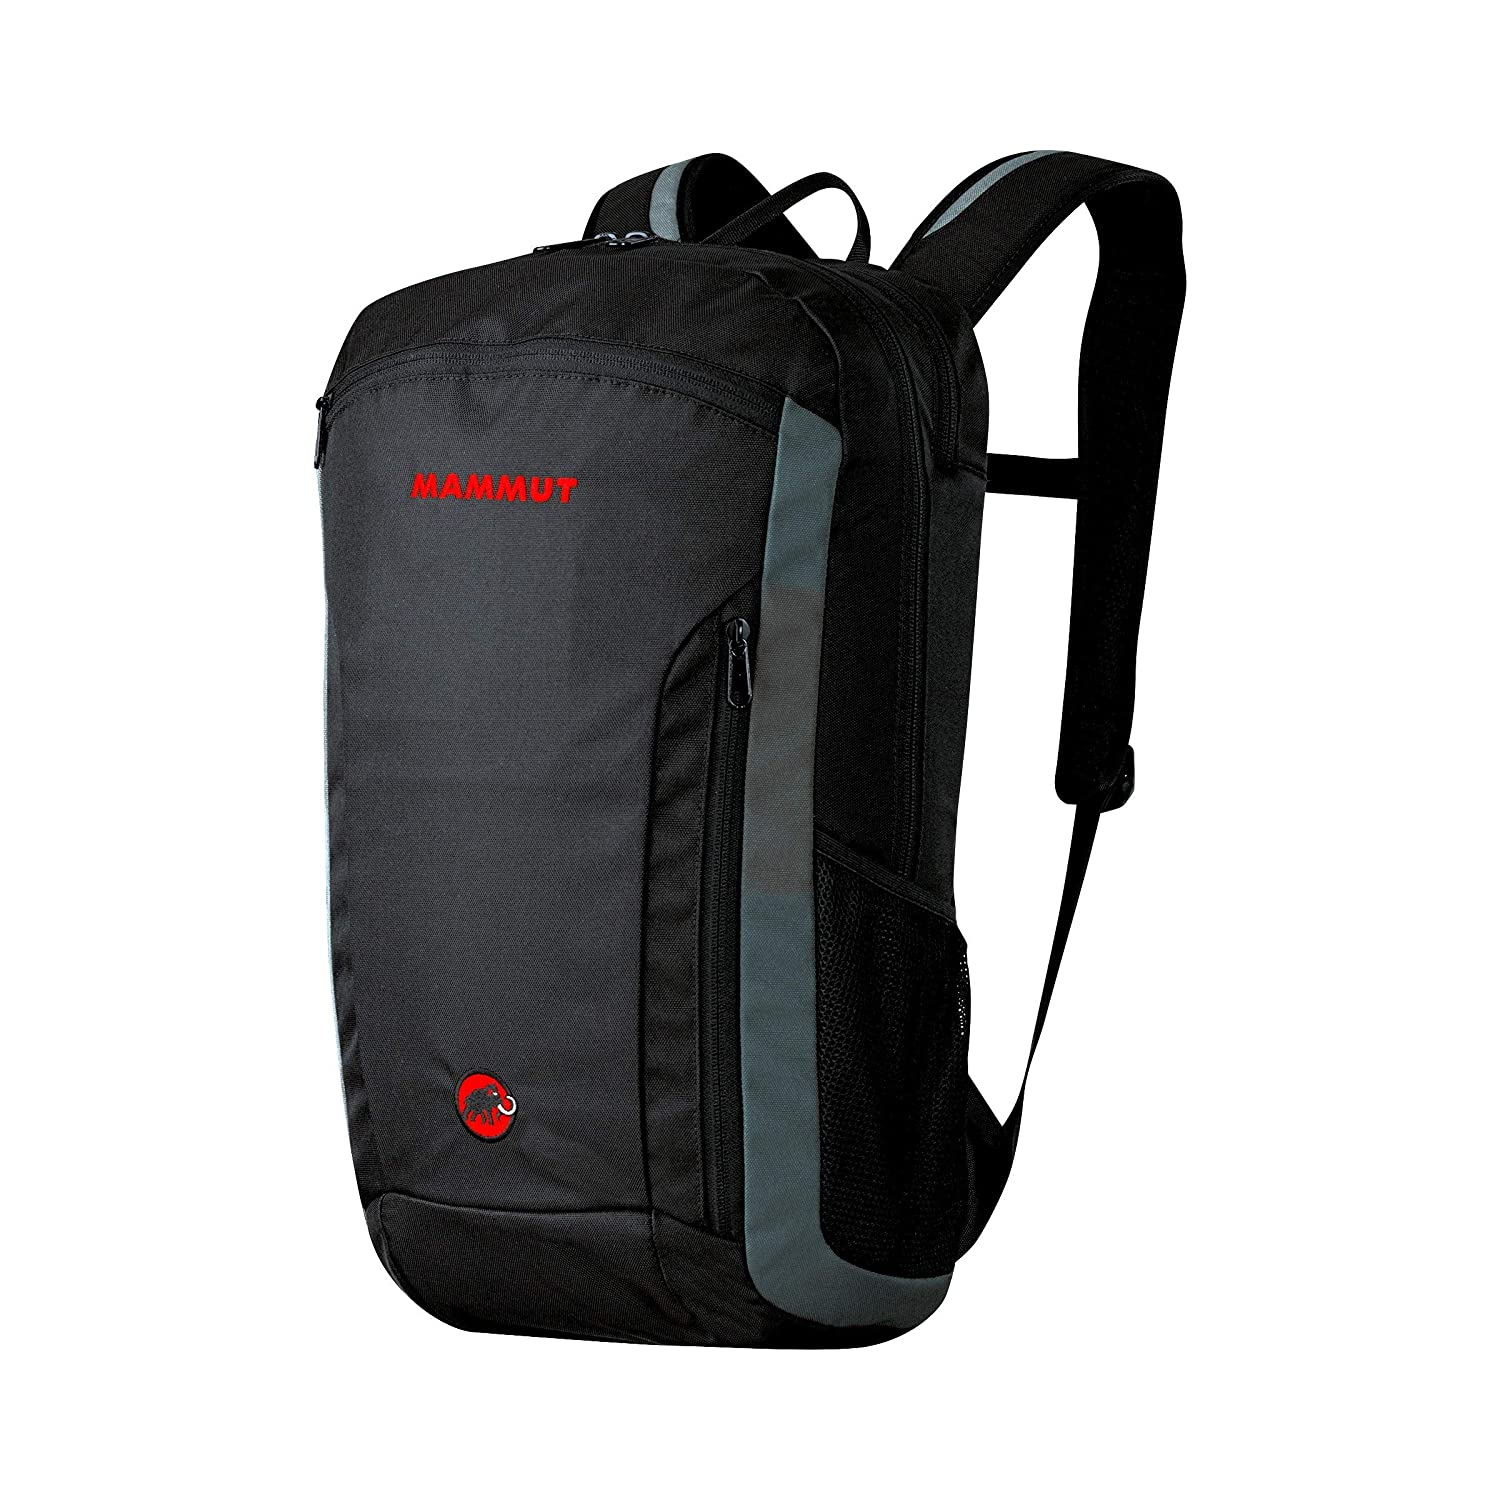 quality uk store cozy fresh Mammut Xeron Element Backpack